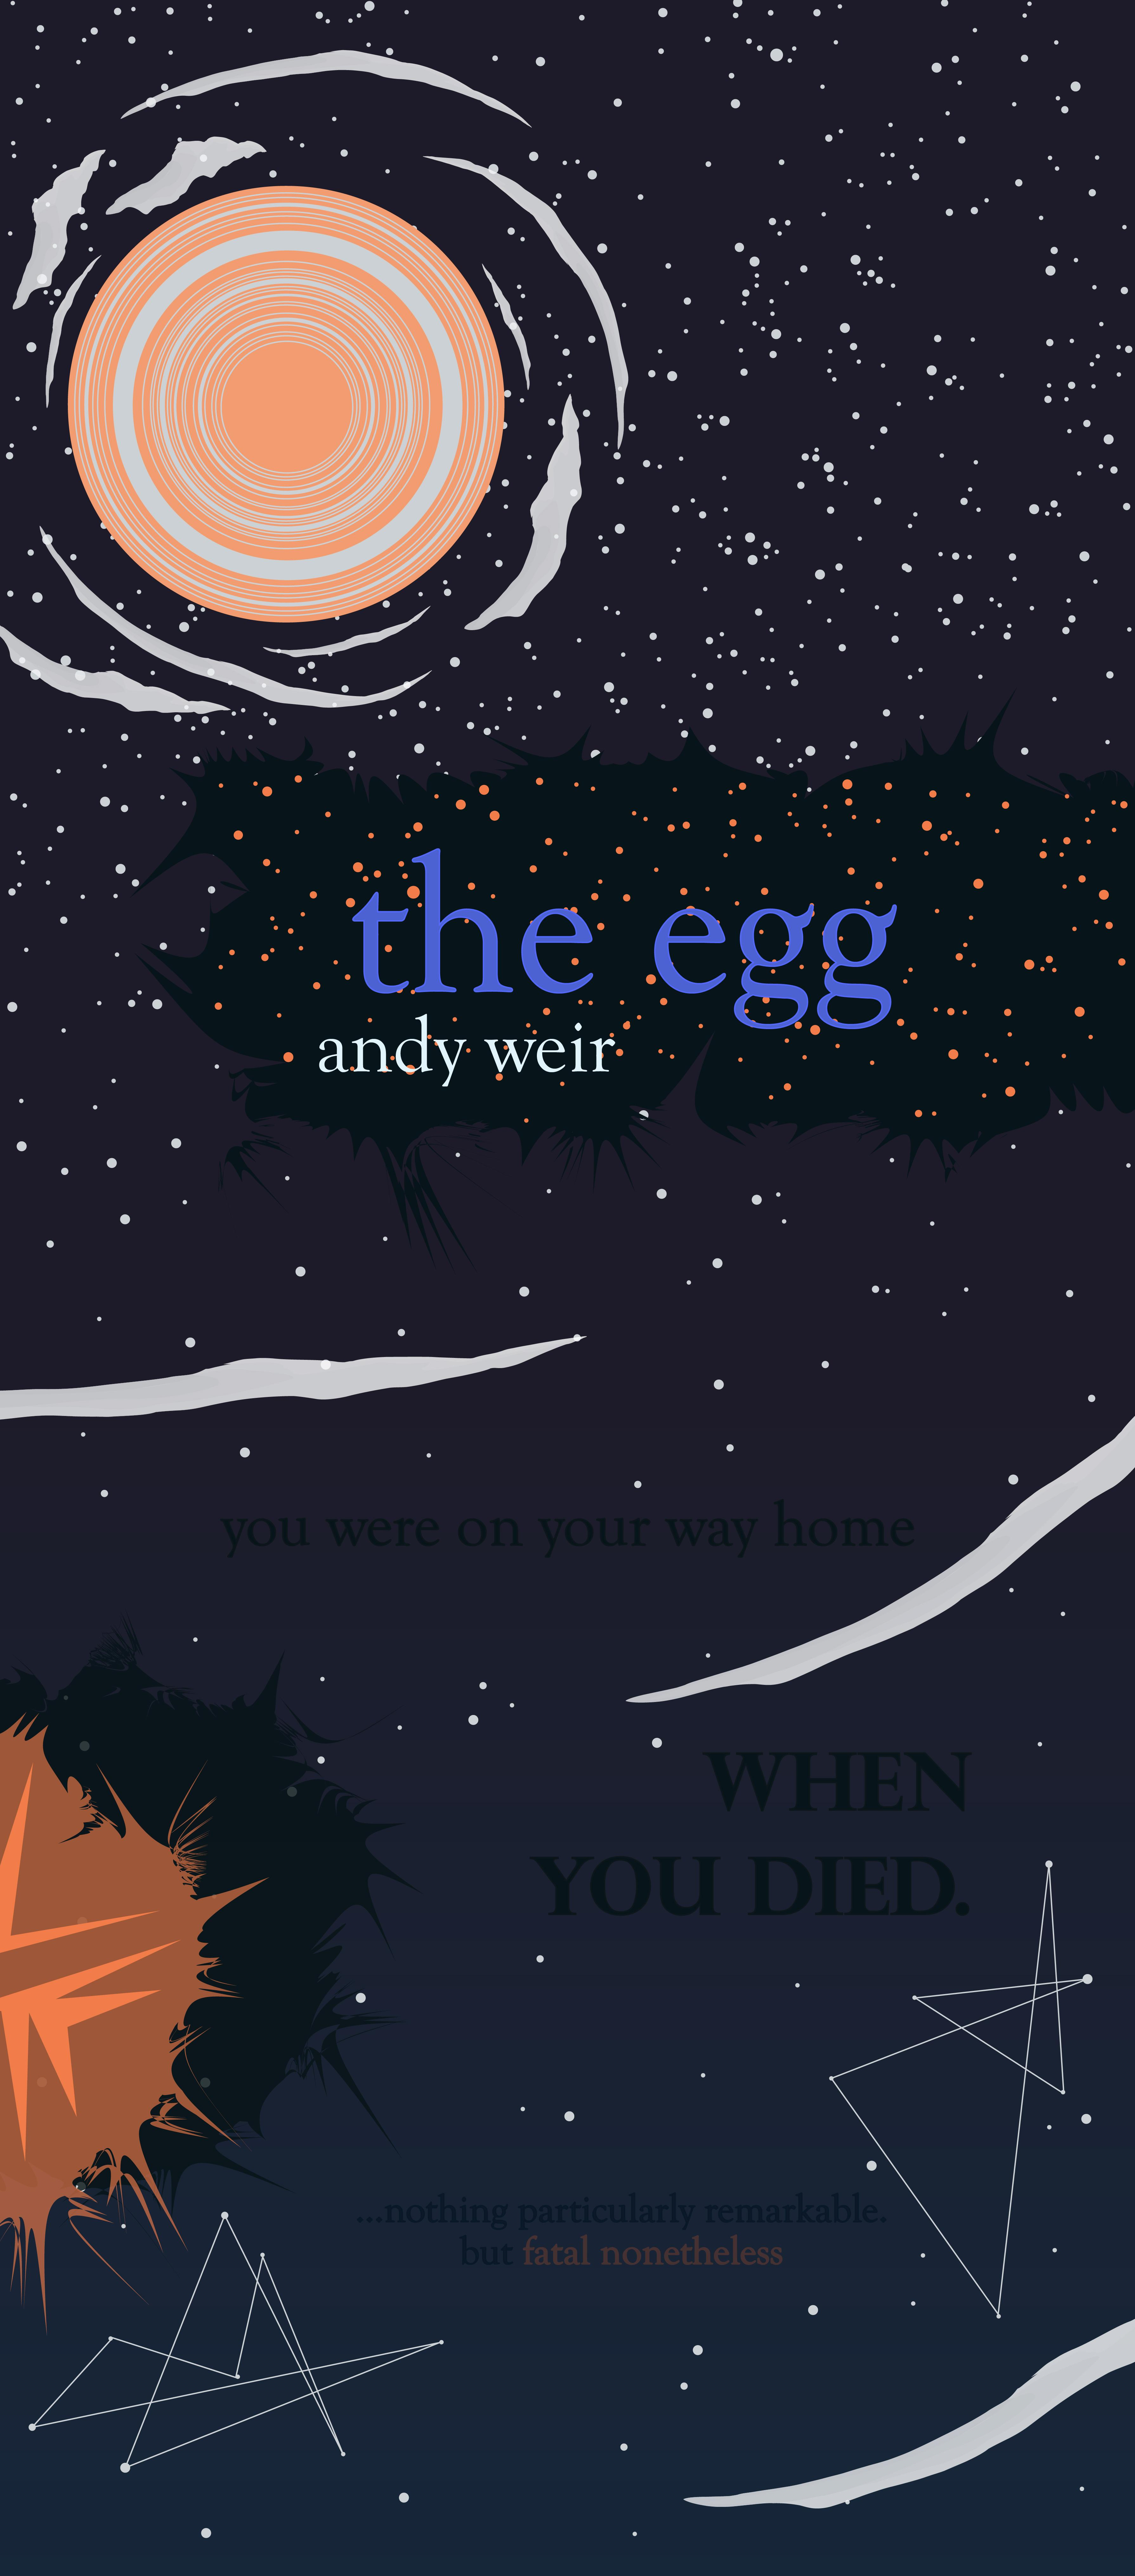 Egg theme the andy weir 10 Mind